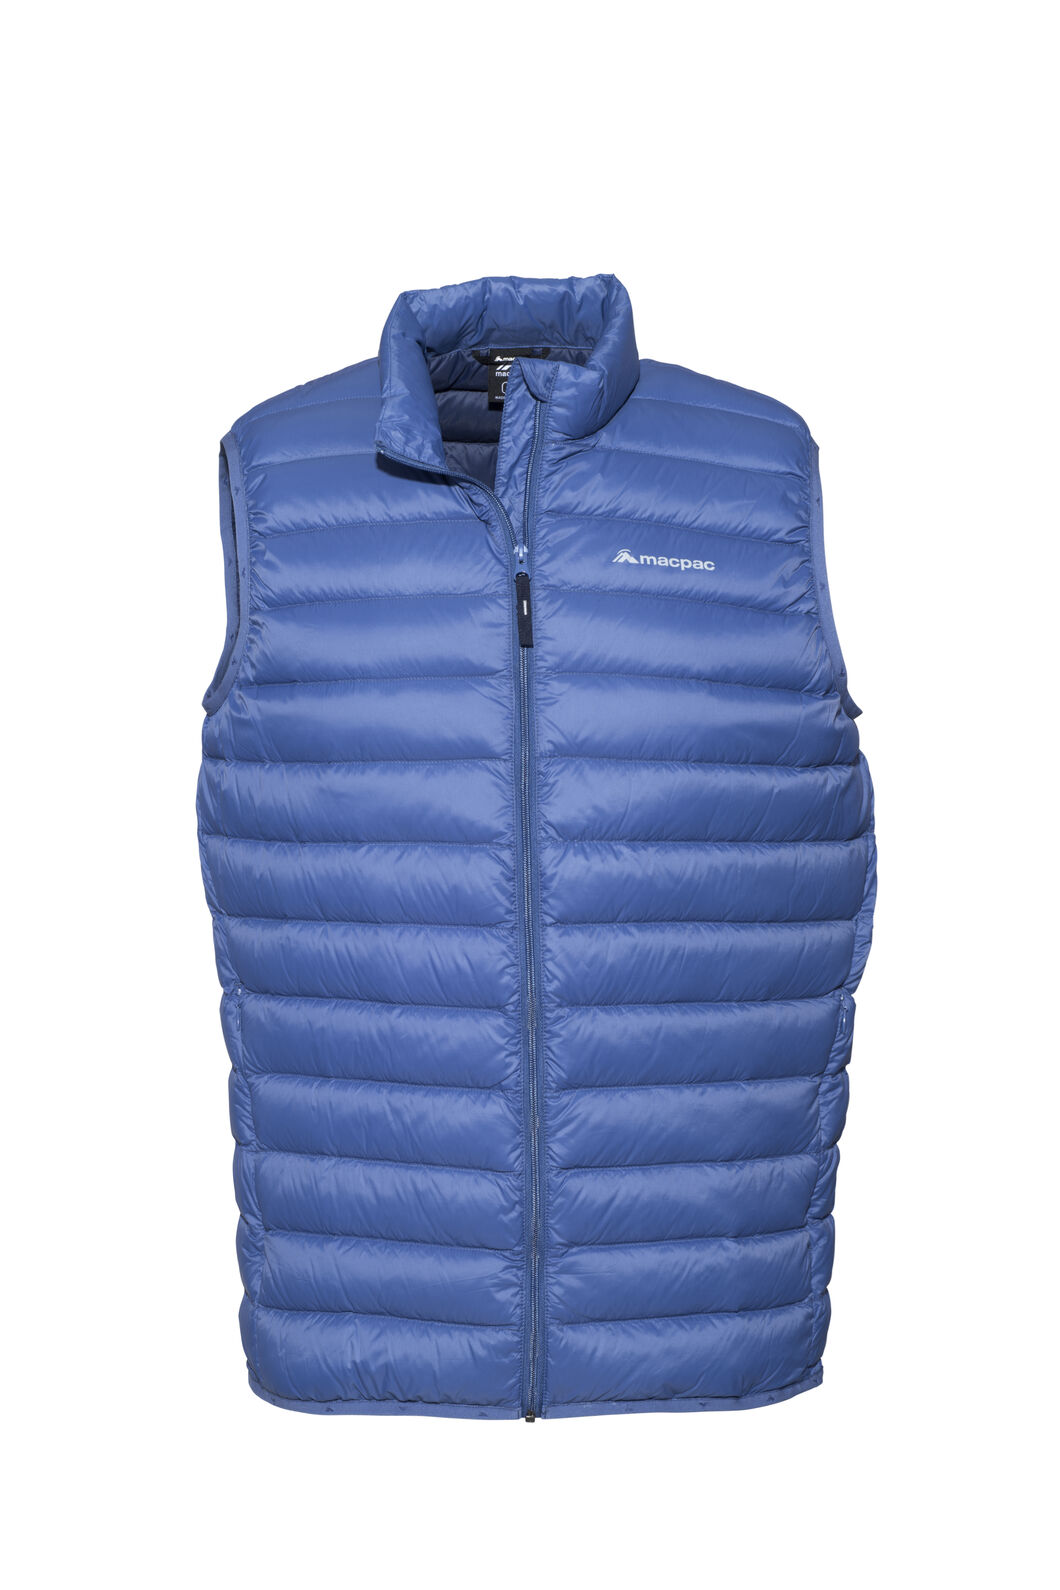 Macpac Uber Light Down Vest — Men's, True Navy, hi-res